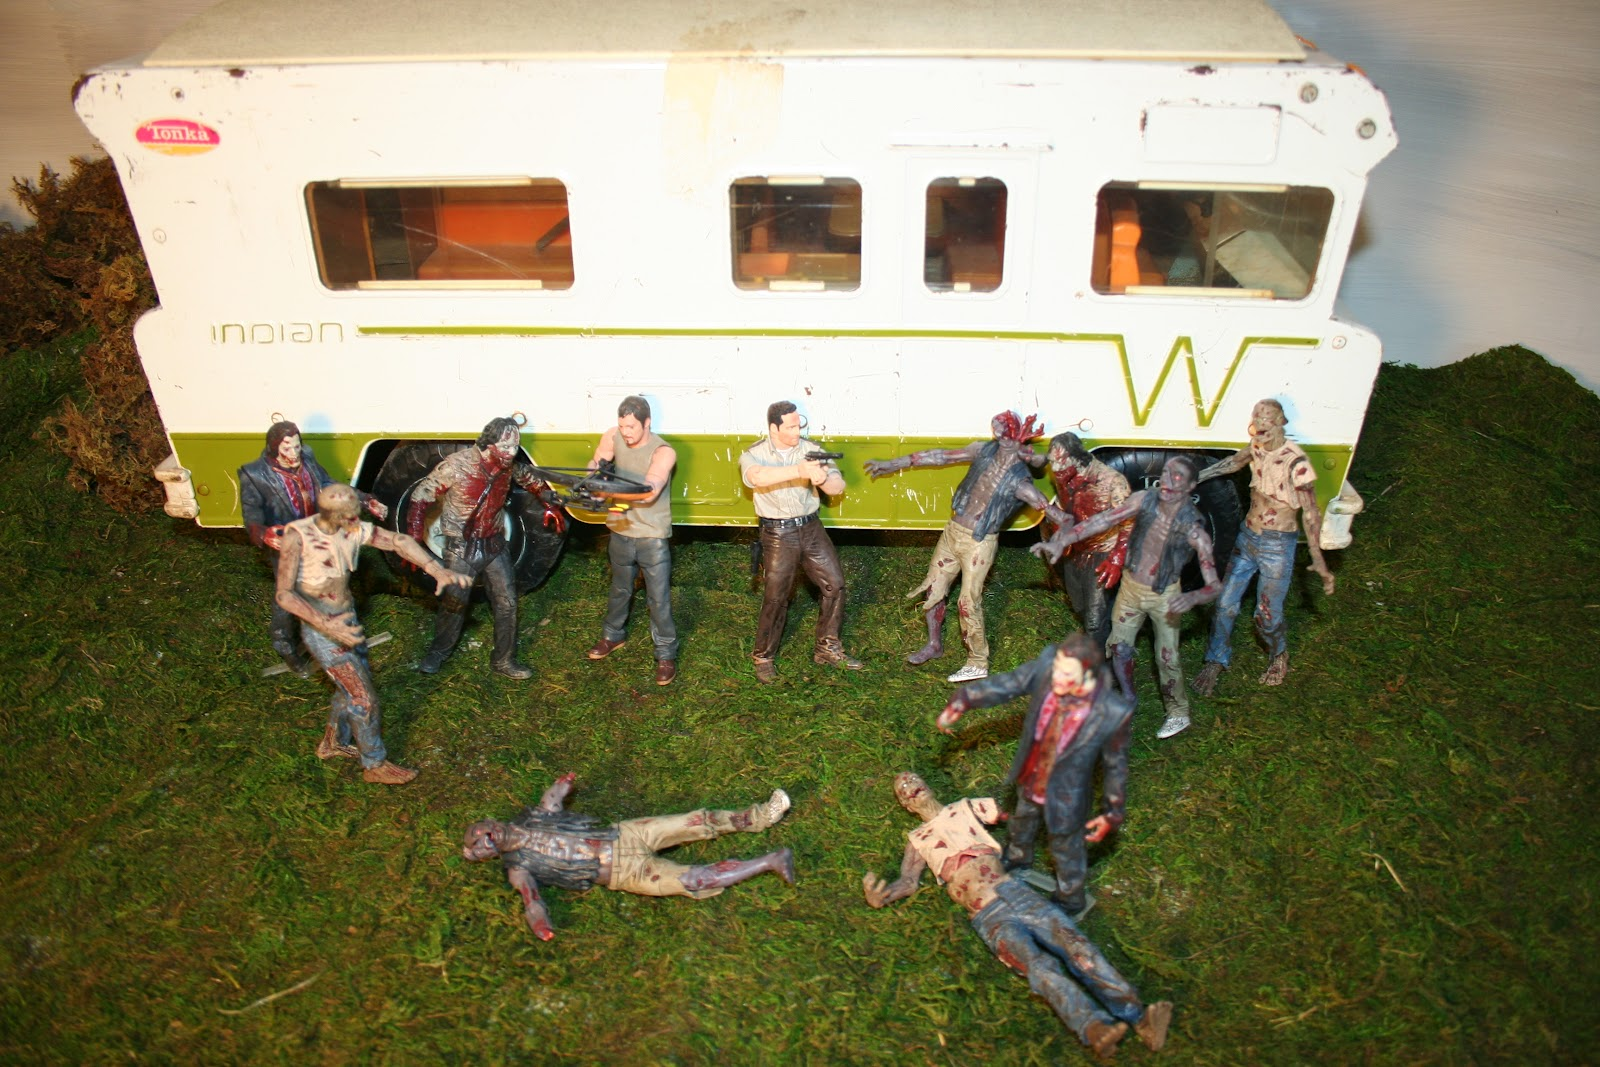 Attack on the Camper